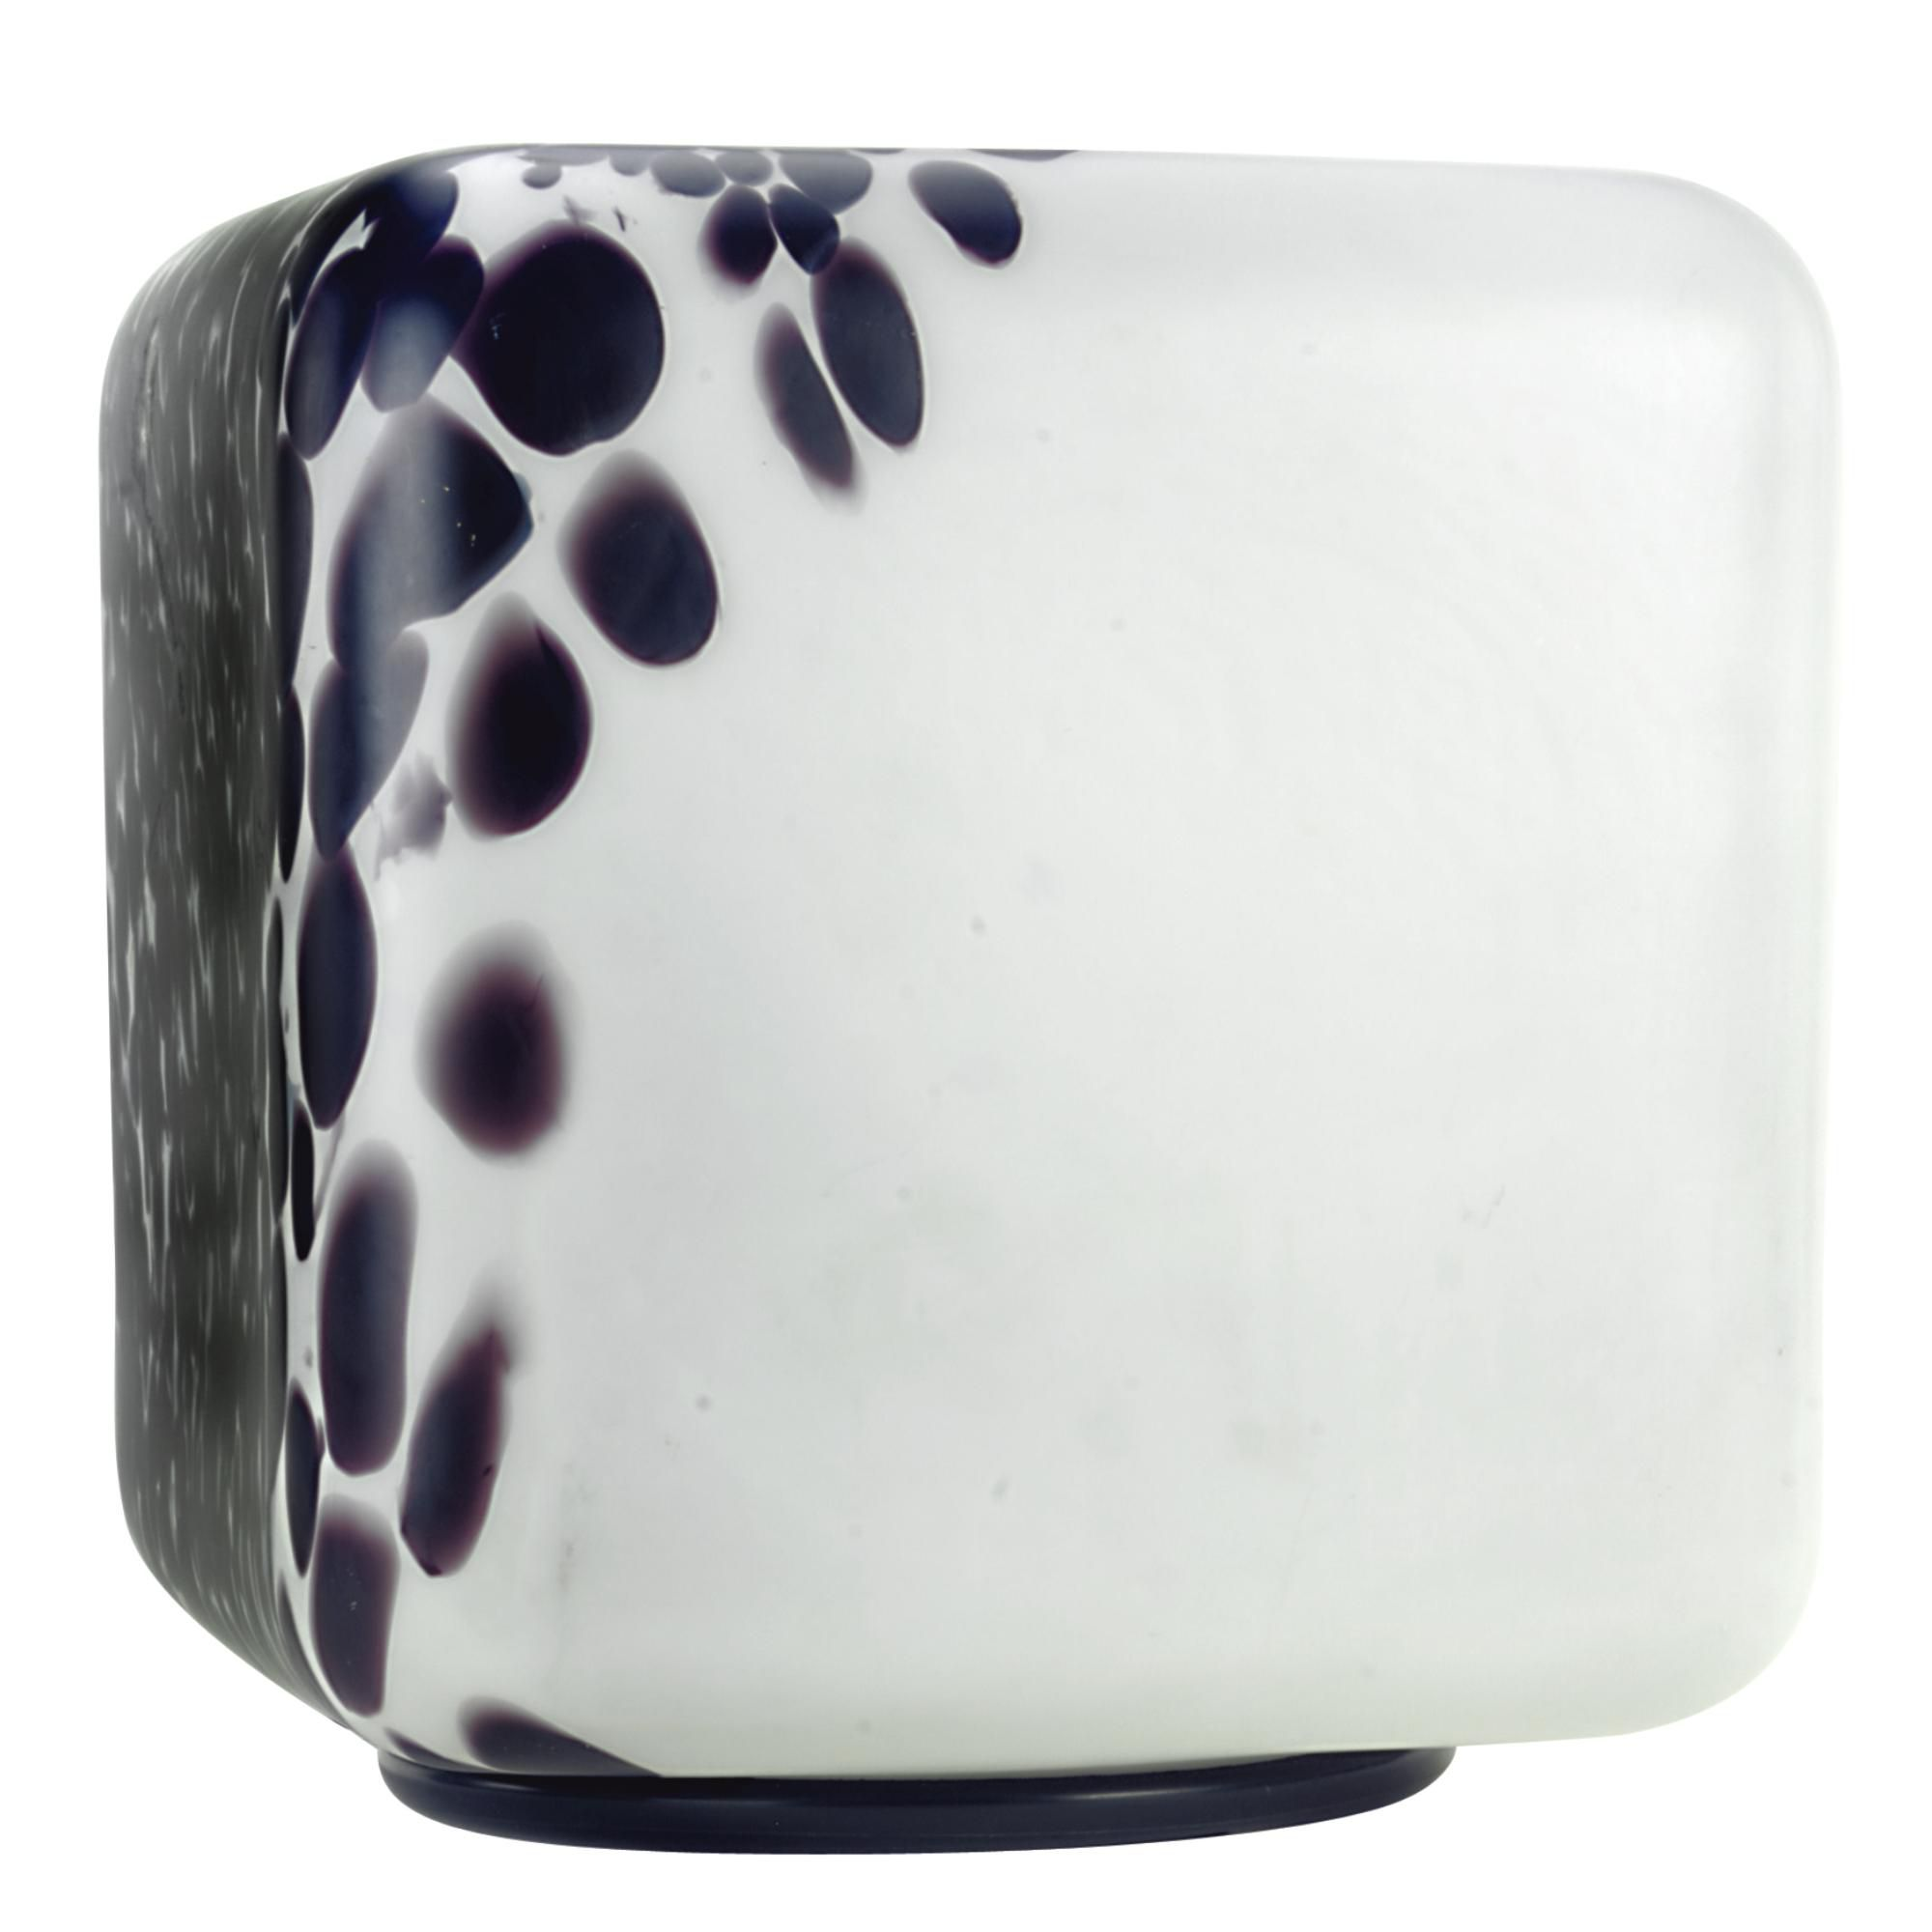 Giorgio de ferrari for veart a large white and aubergine spotted giorgio de ferrari for veart a large white and aubergine spotted cube table lamp the top with an iron handle supporting the shade two bulb fittings geotapseo Choice Image